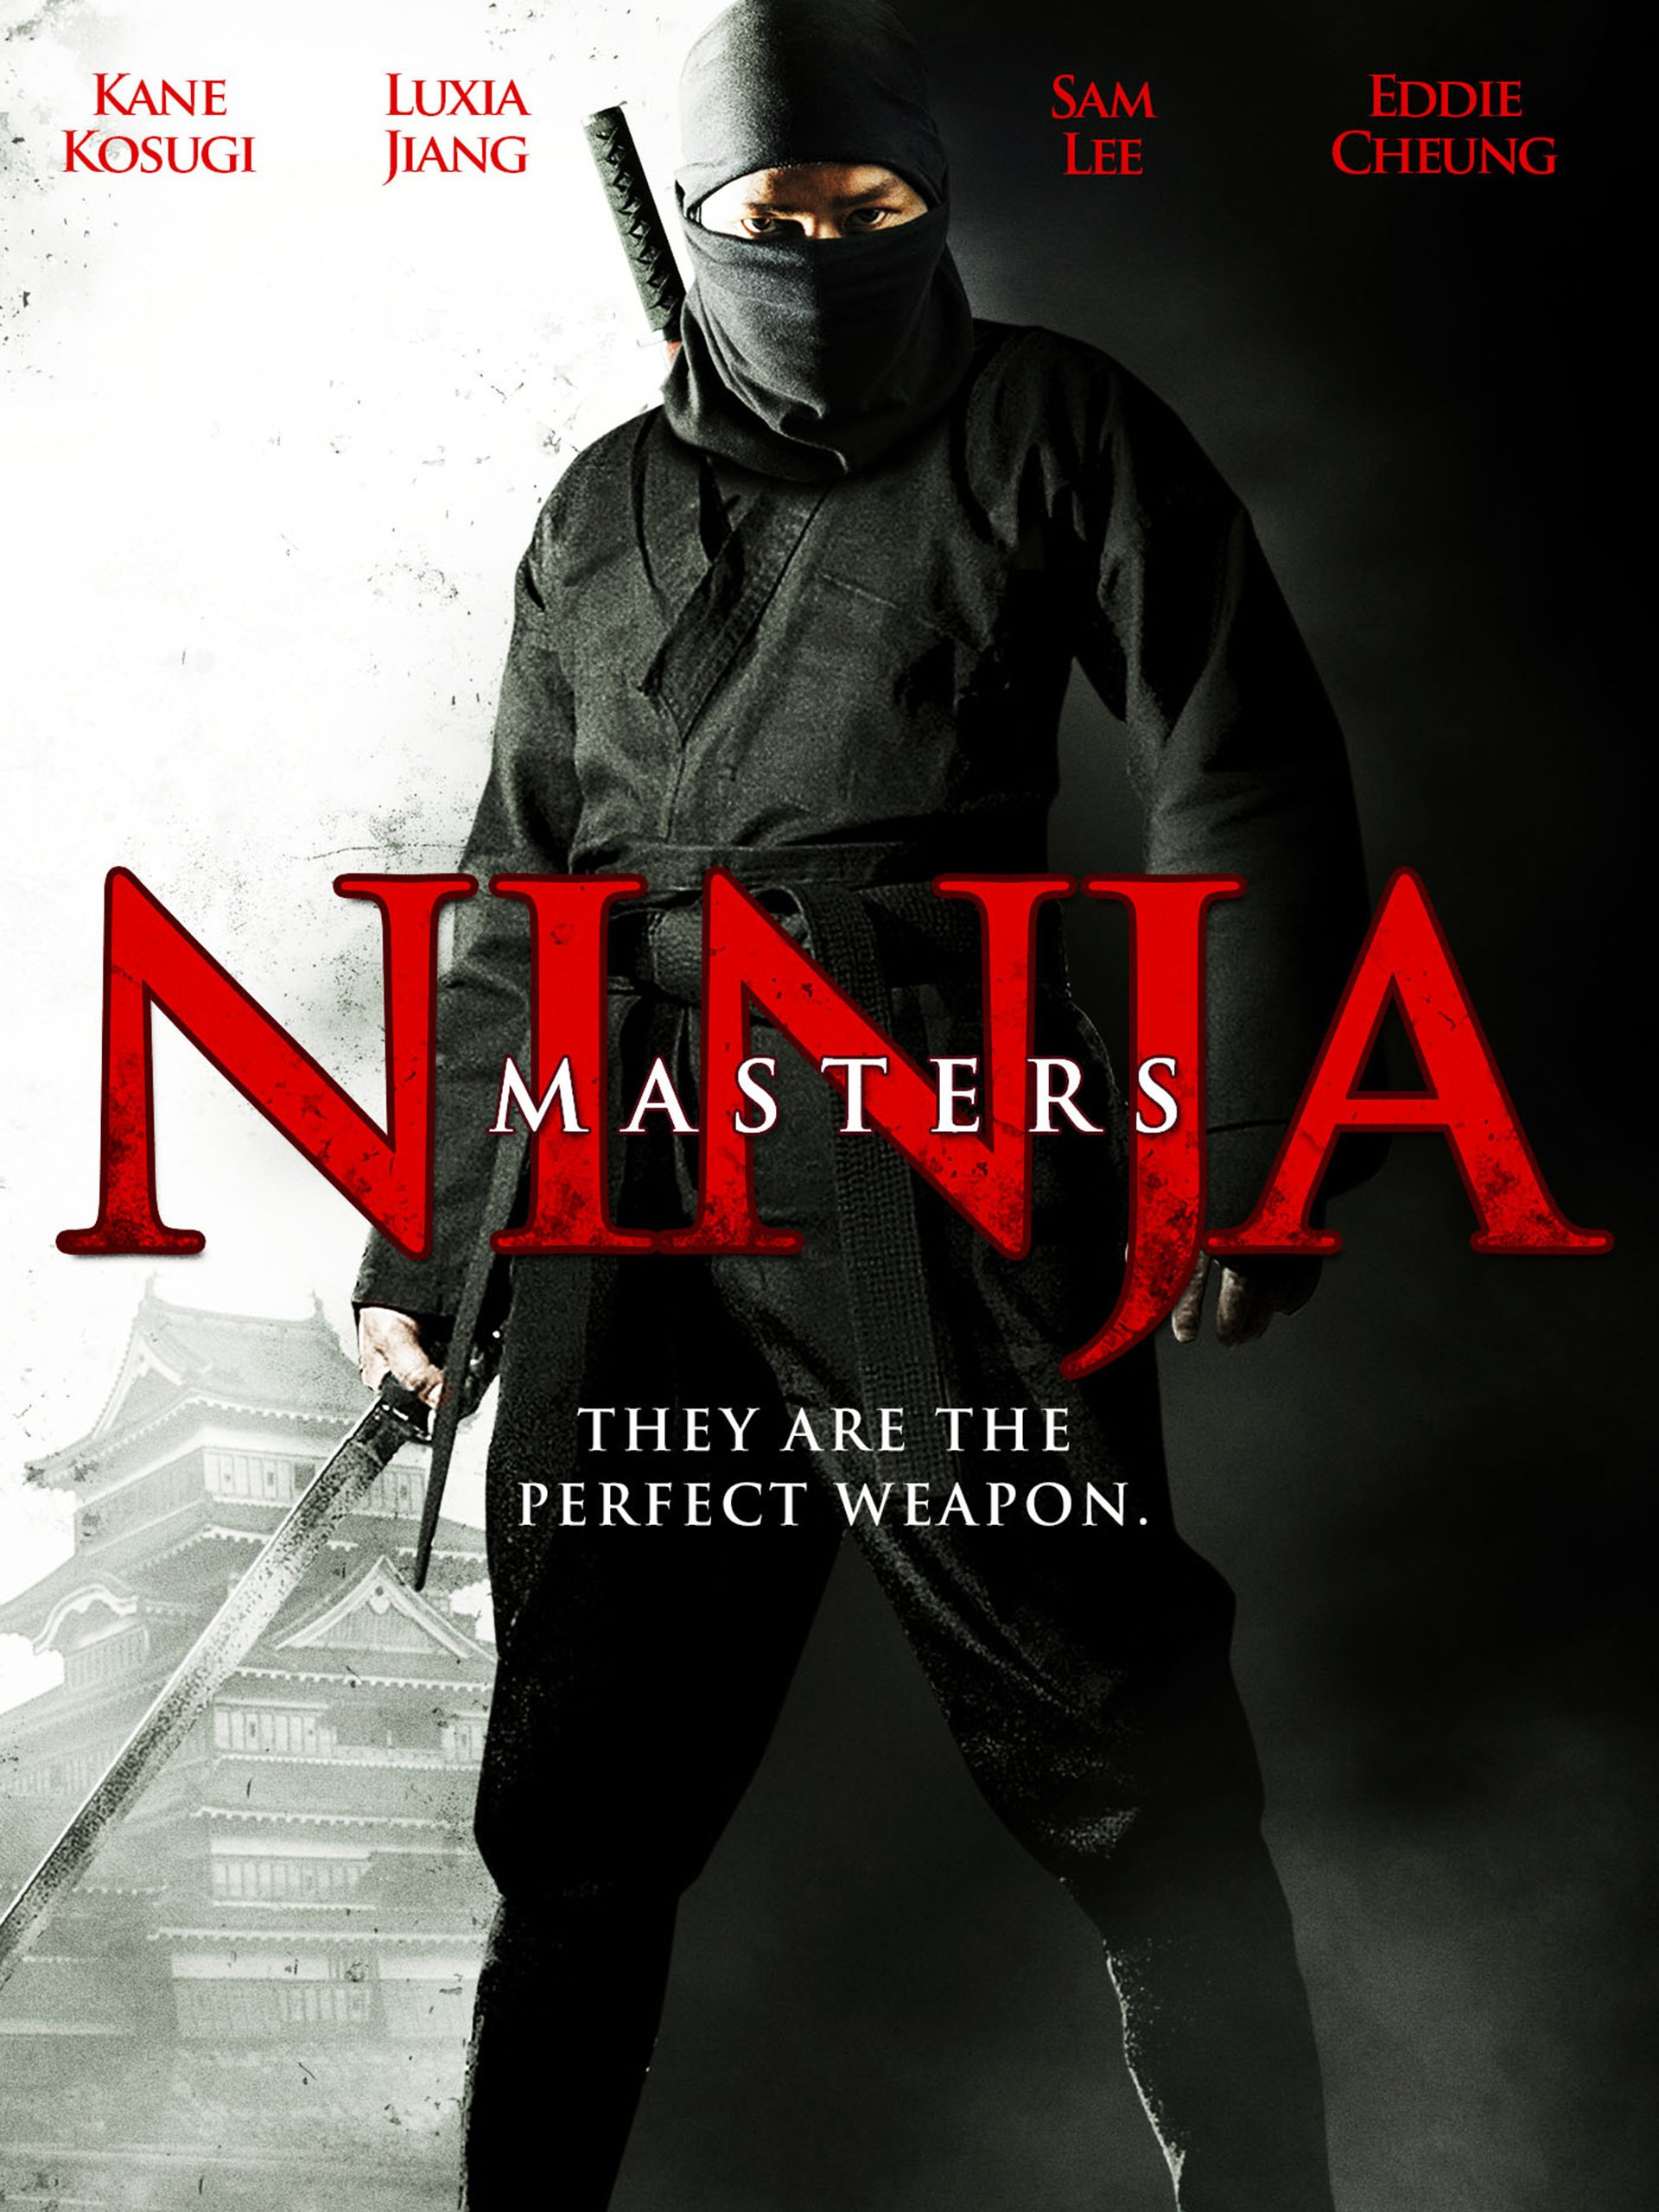 Amazon.com: Ninja Masters: Kane Kosugi, Courtney Wu, Siu-Fai ...